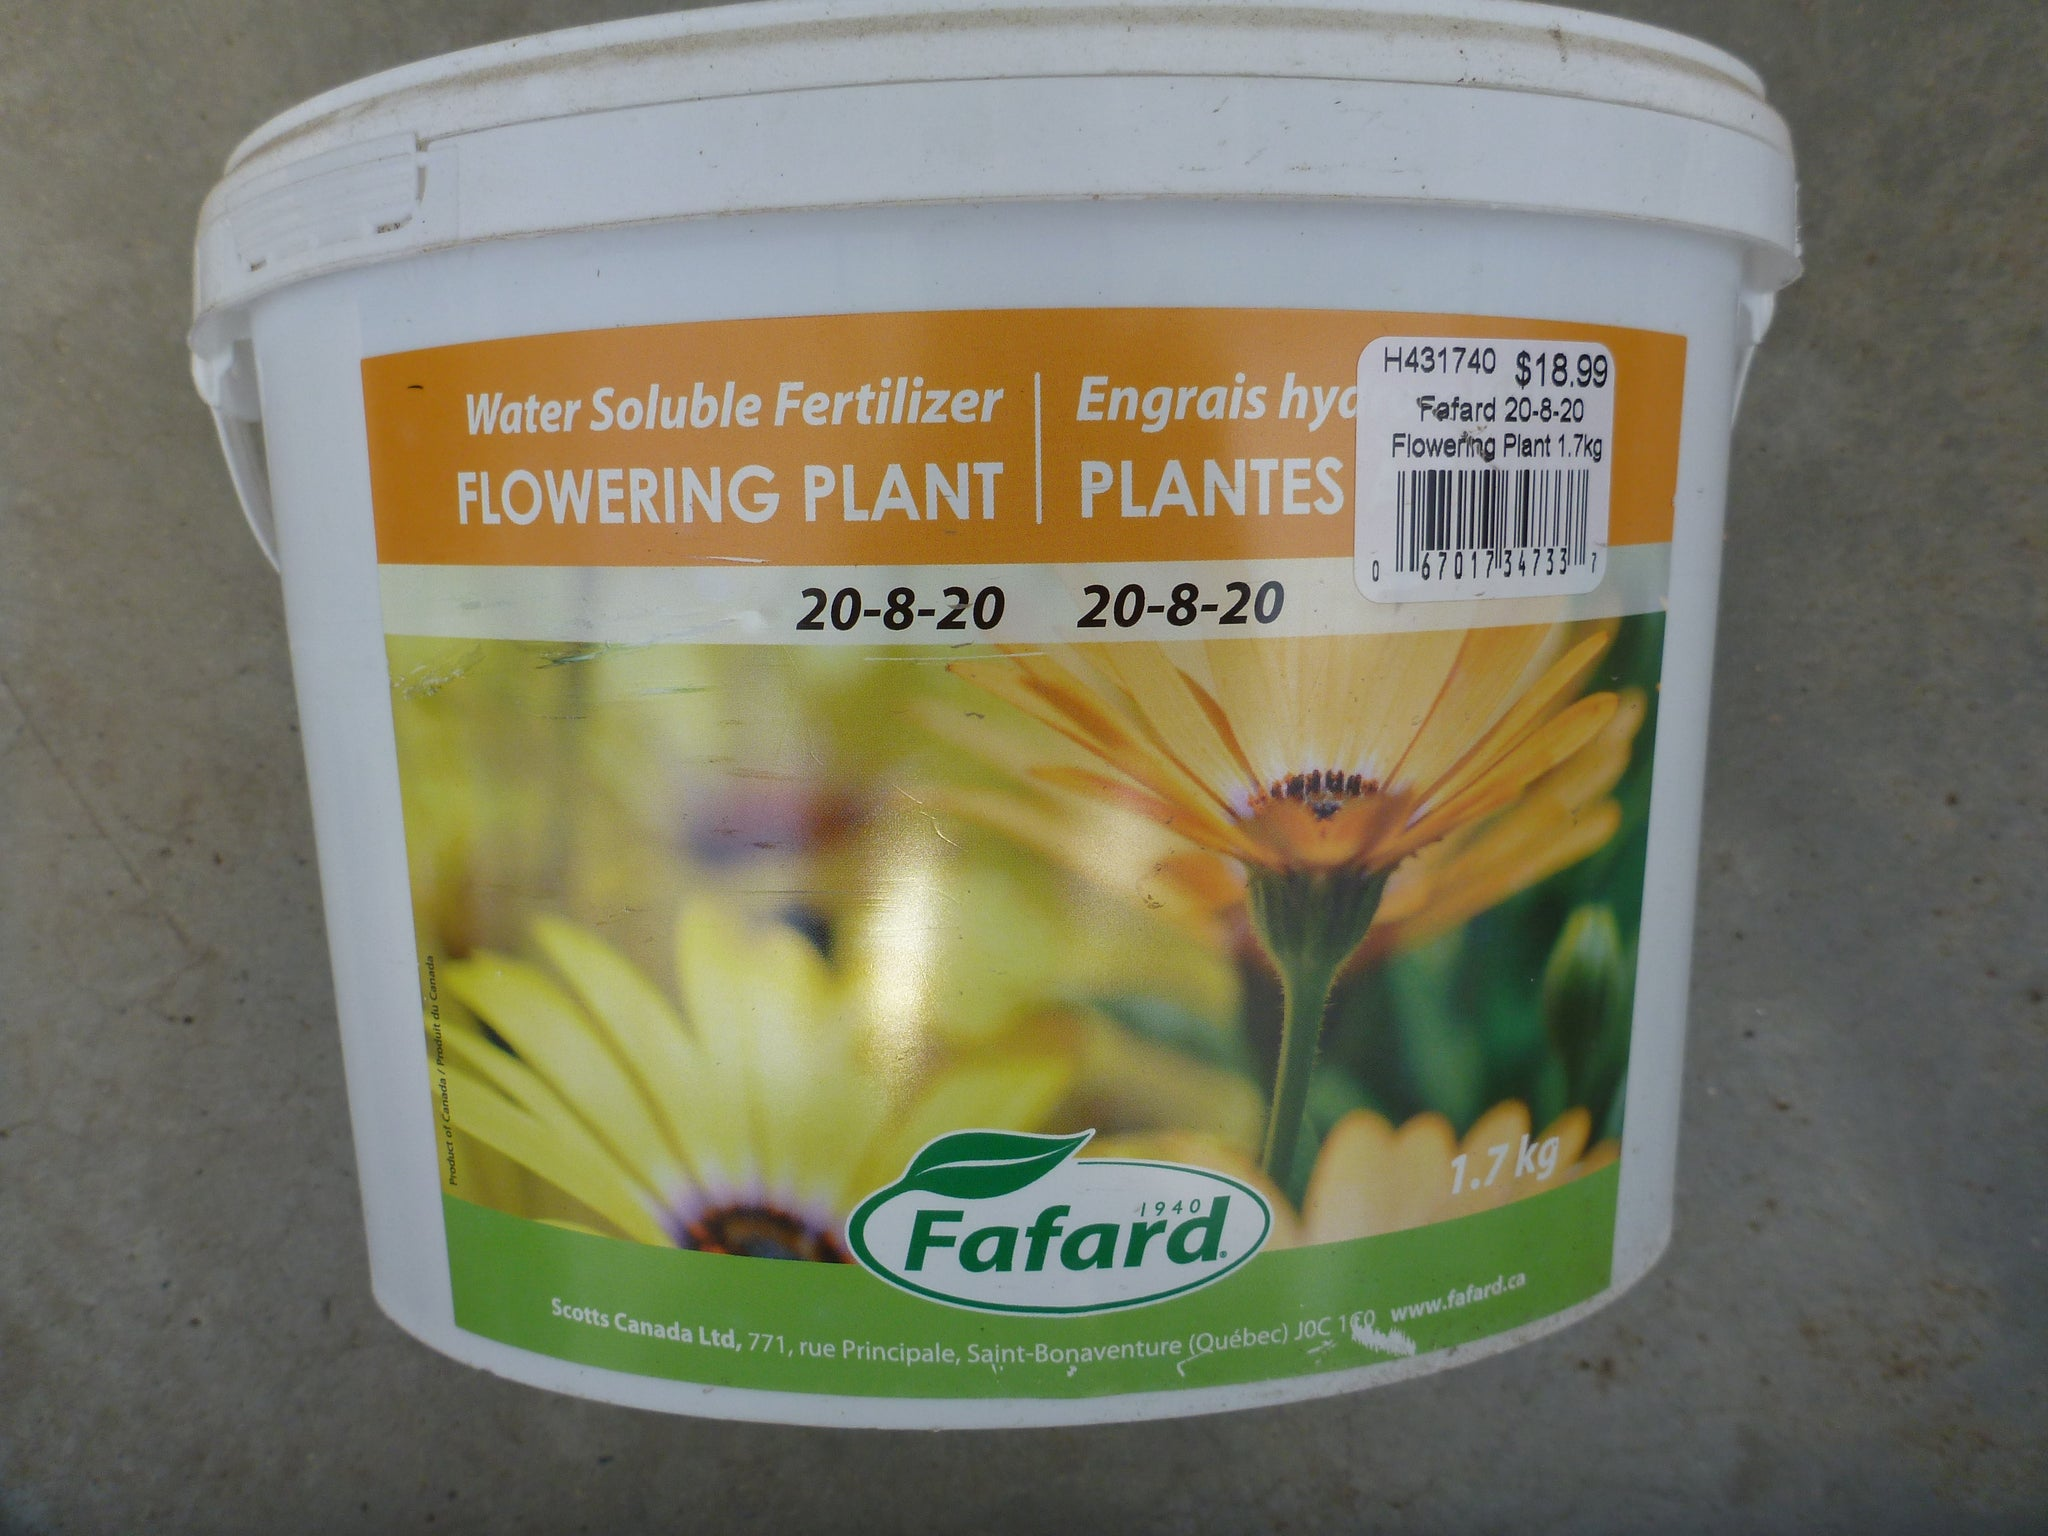 Fafard - Flowering Plant Fertilizer 1.7kg